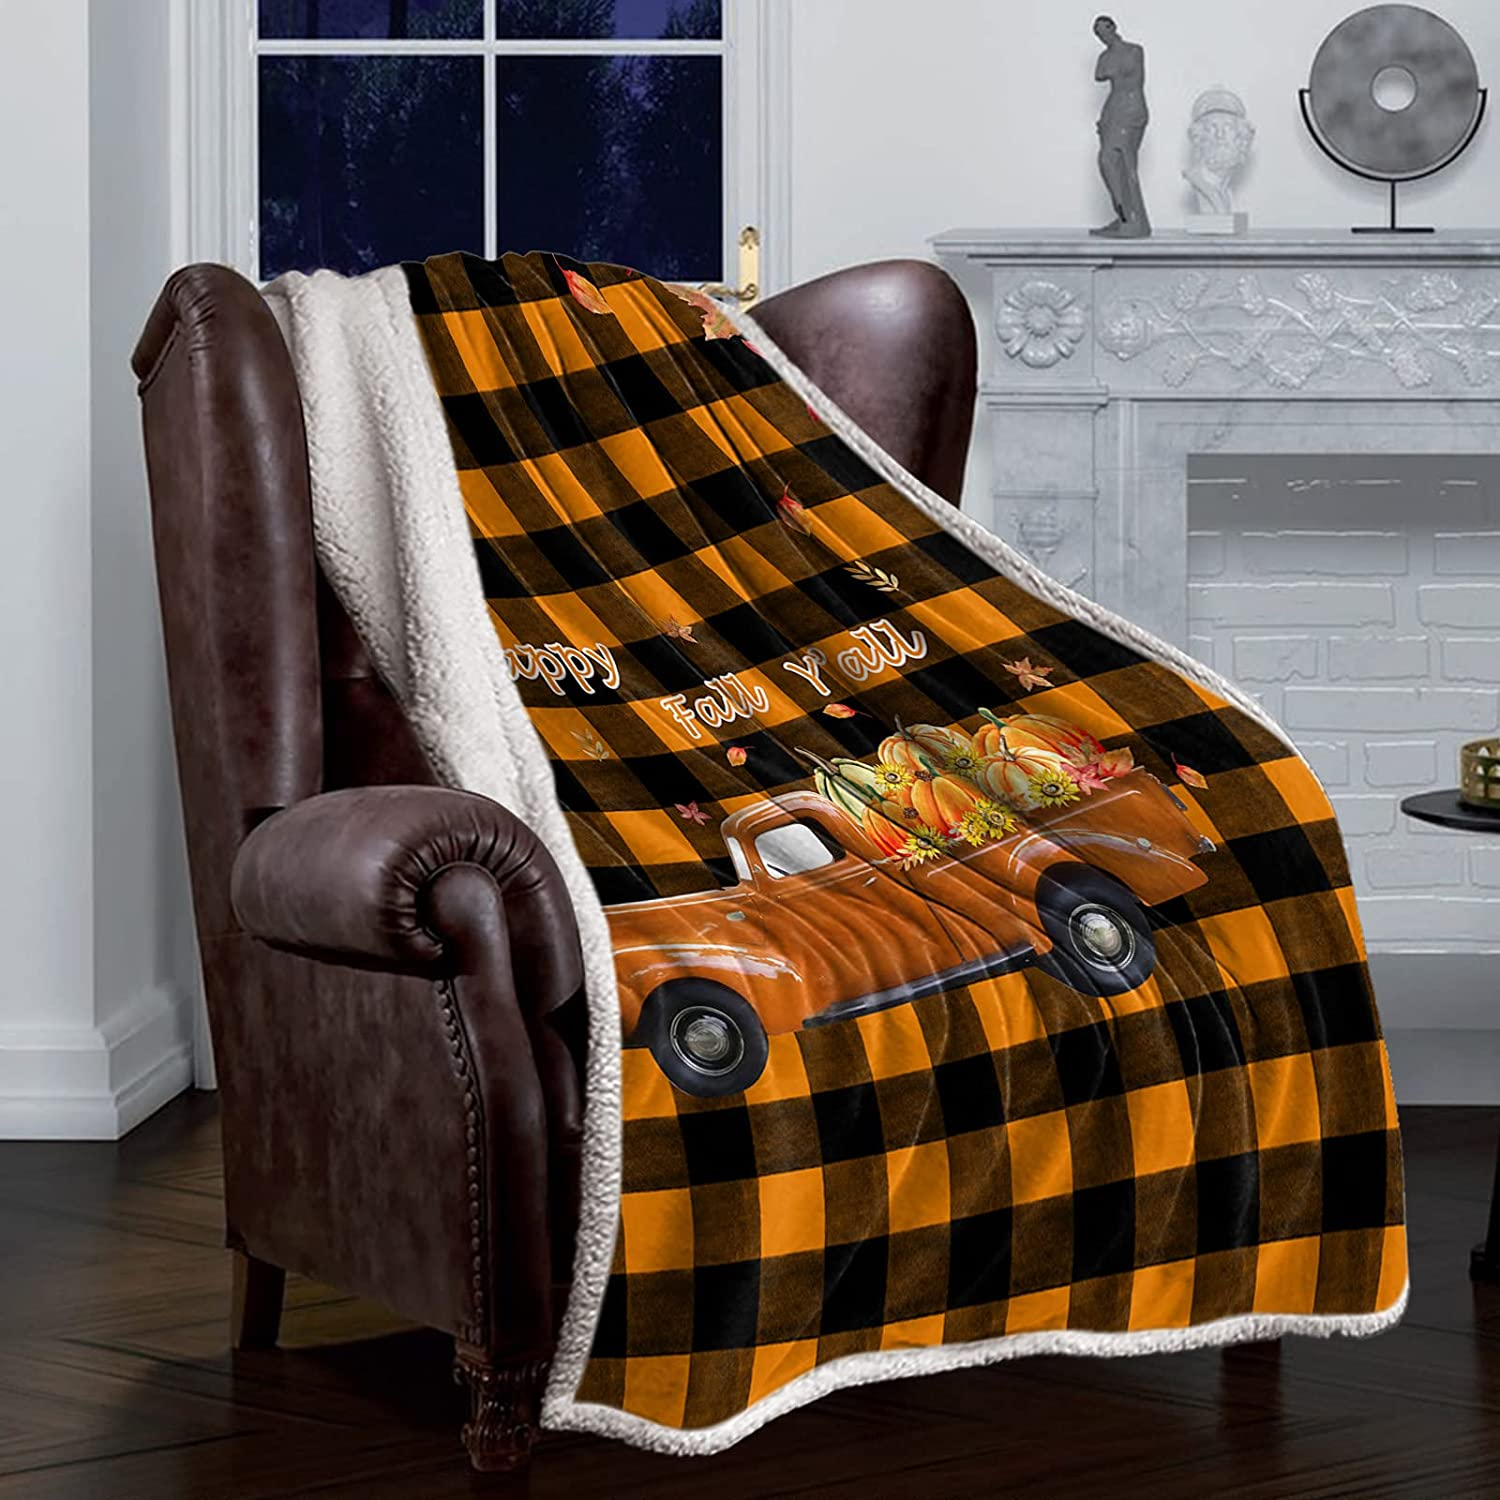 Sherpa Luxury goods Flannel Throw Blankets Fall Cheap mail order specialty store Harvest Pumpkin Thanksgiving